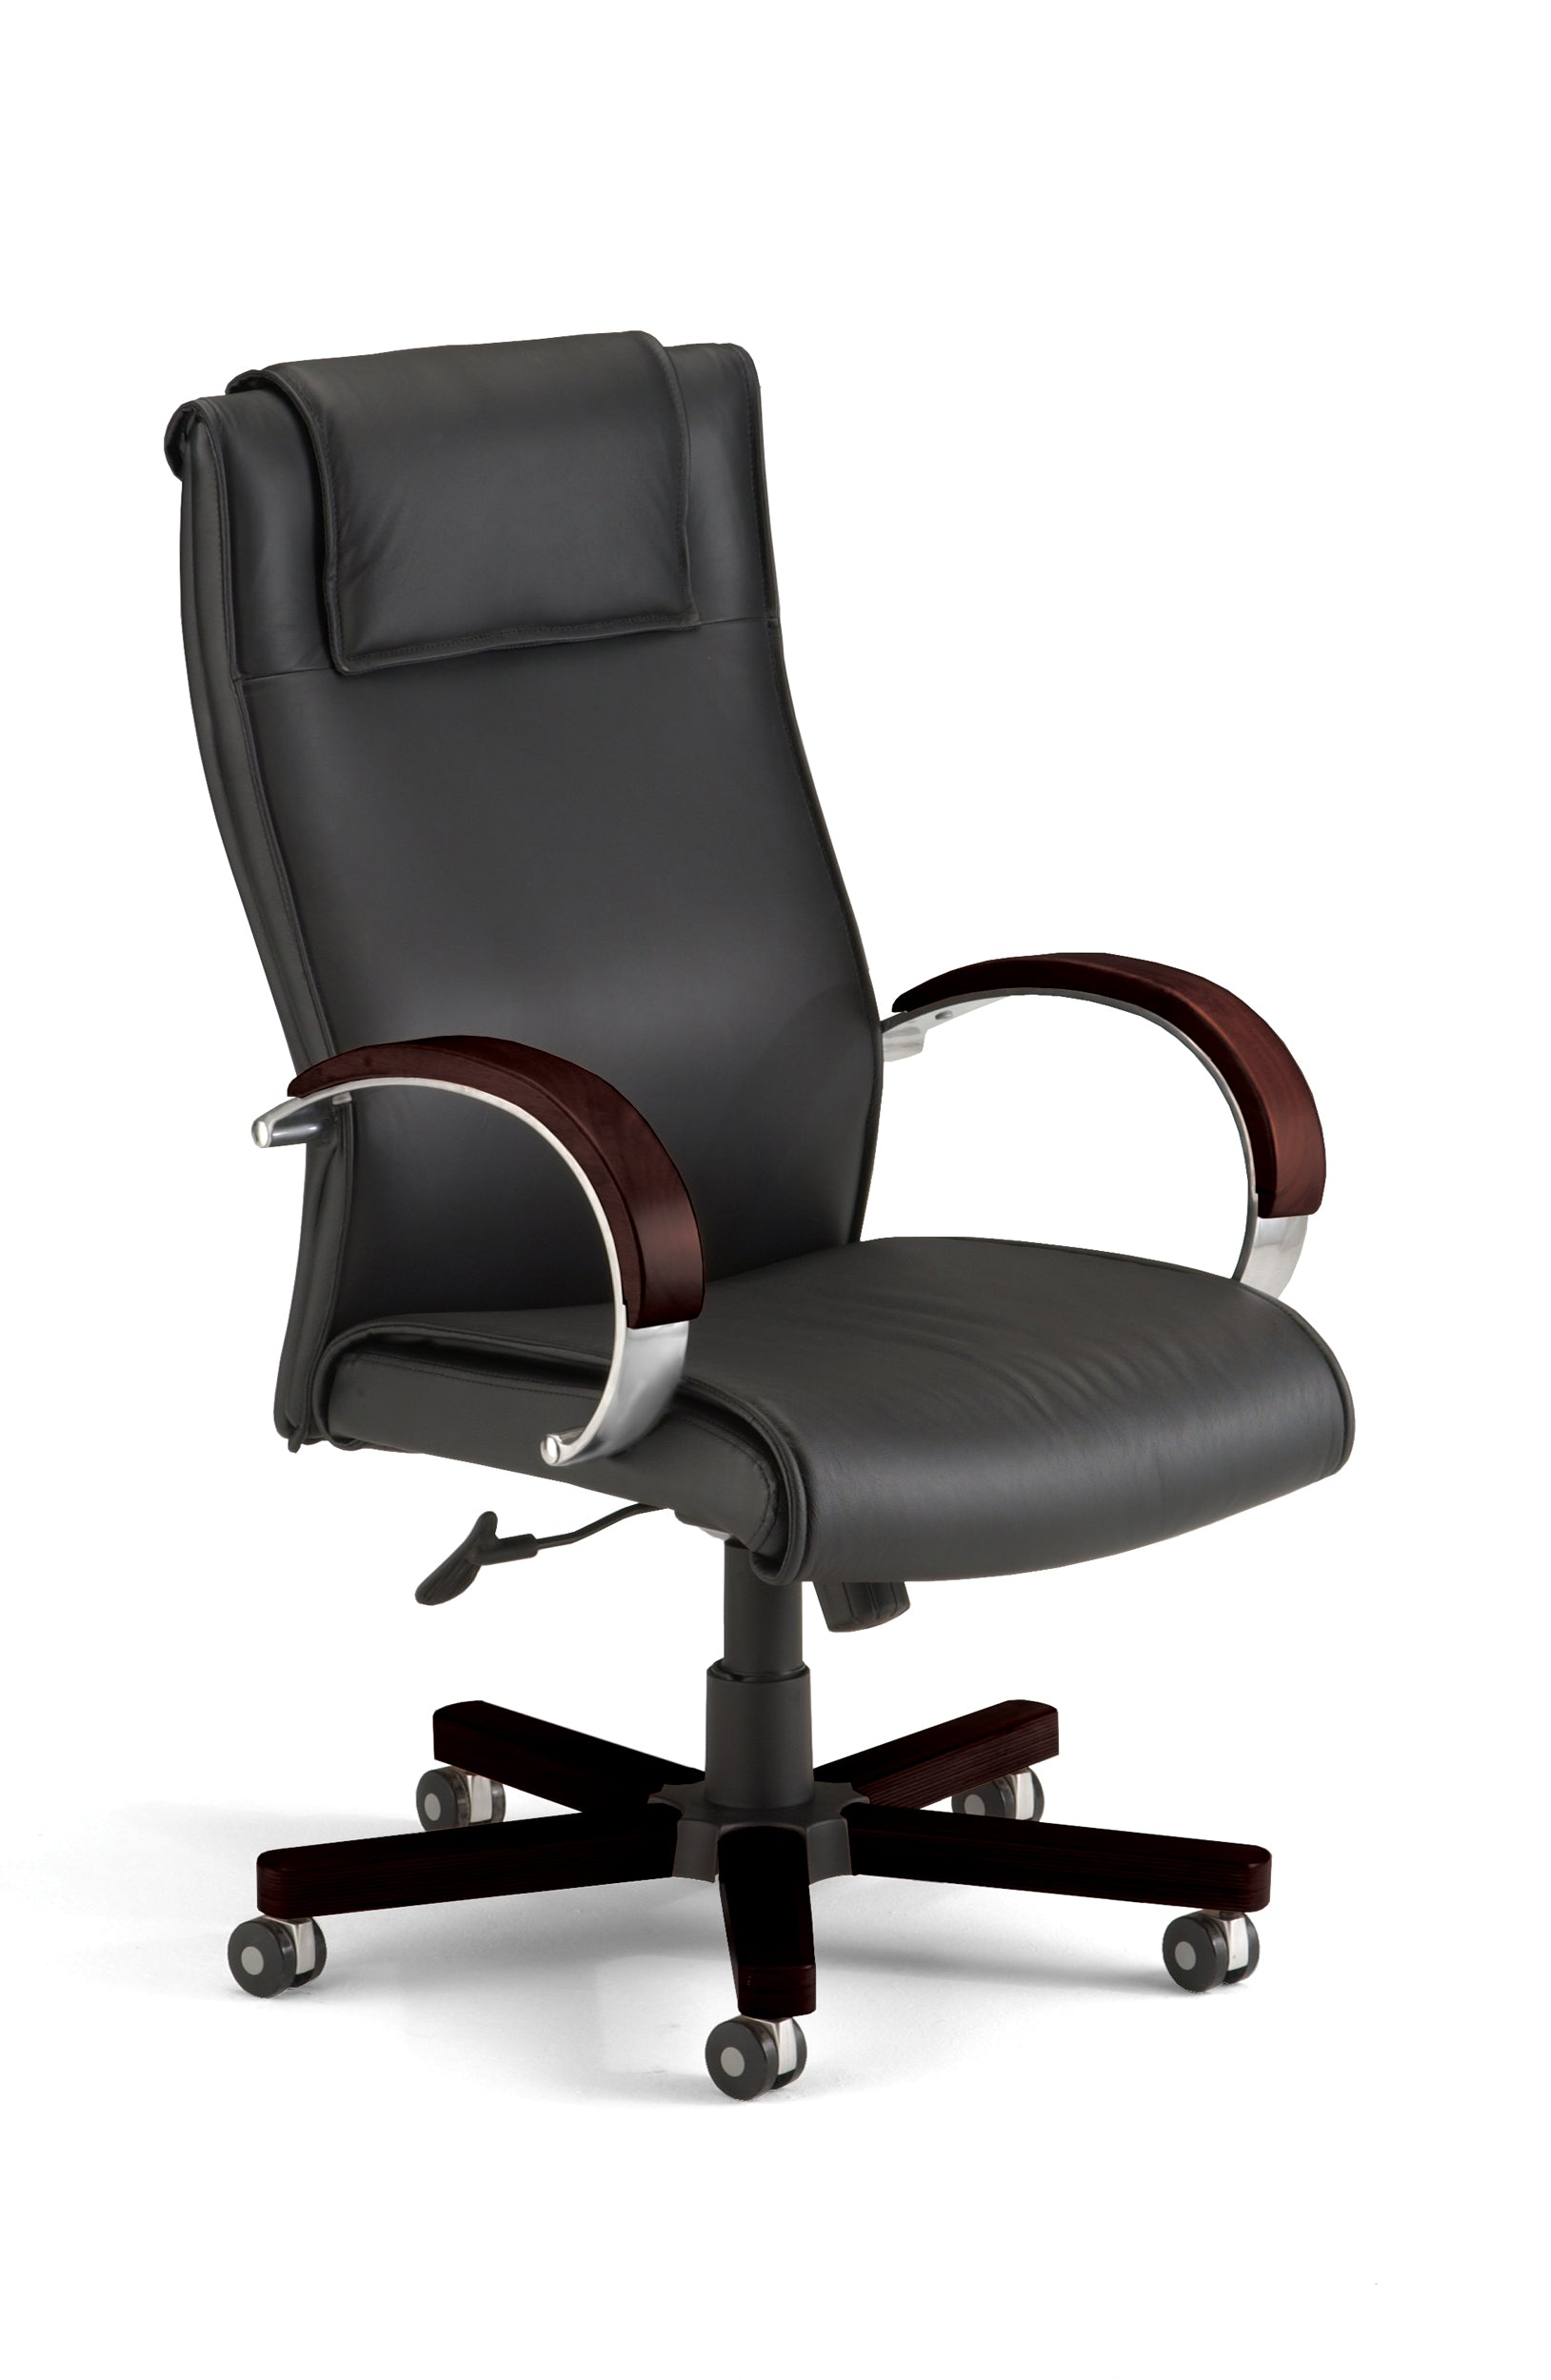 Model 560-L Apex Series High-Back Leather Executive Office Chair